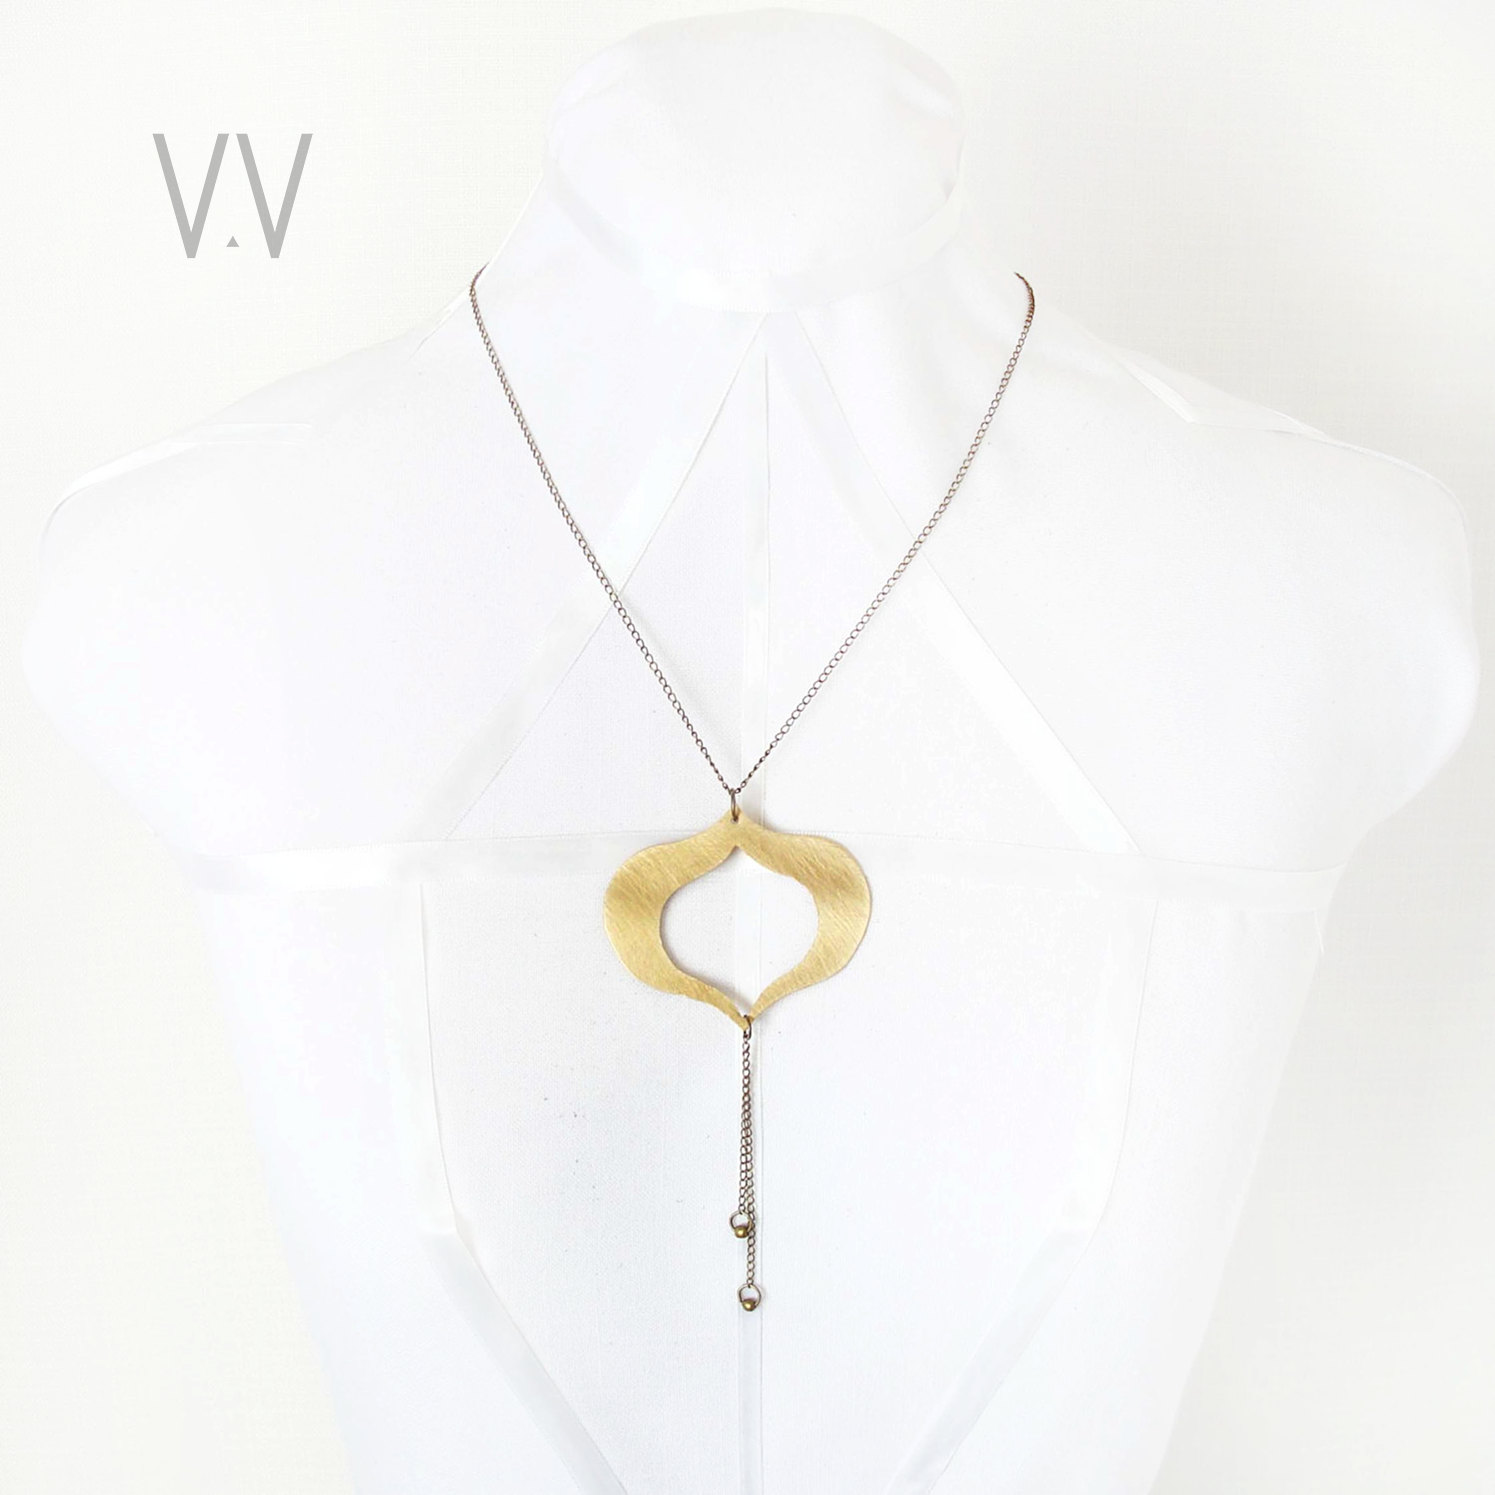 necklace jewels jewelry like simple geometric follow modern necklaces triangle look v circle charm echzya minimal statement detailed l